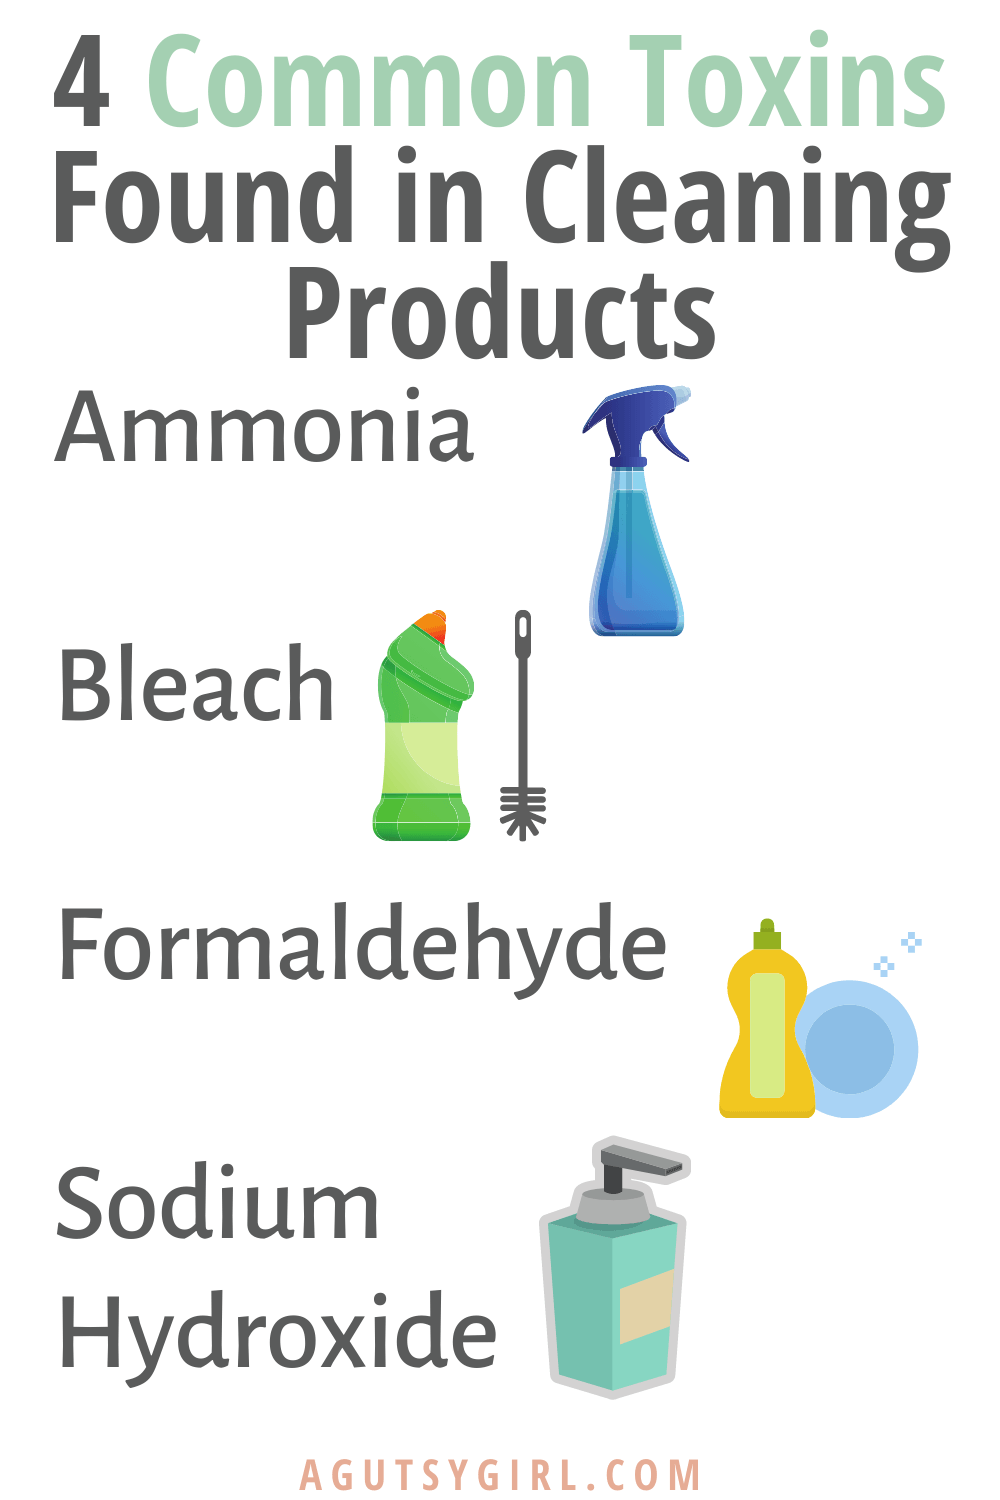 4 Common Toxins Found in Cleaning Products formaldahyde agutsygirl.com #cleaningproducts #guthealth #toxins #chemicals